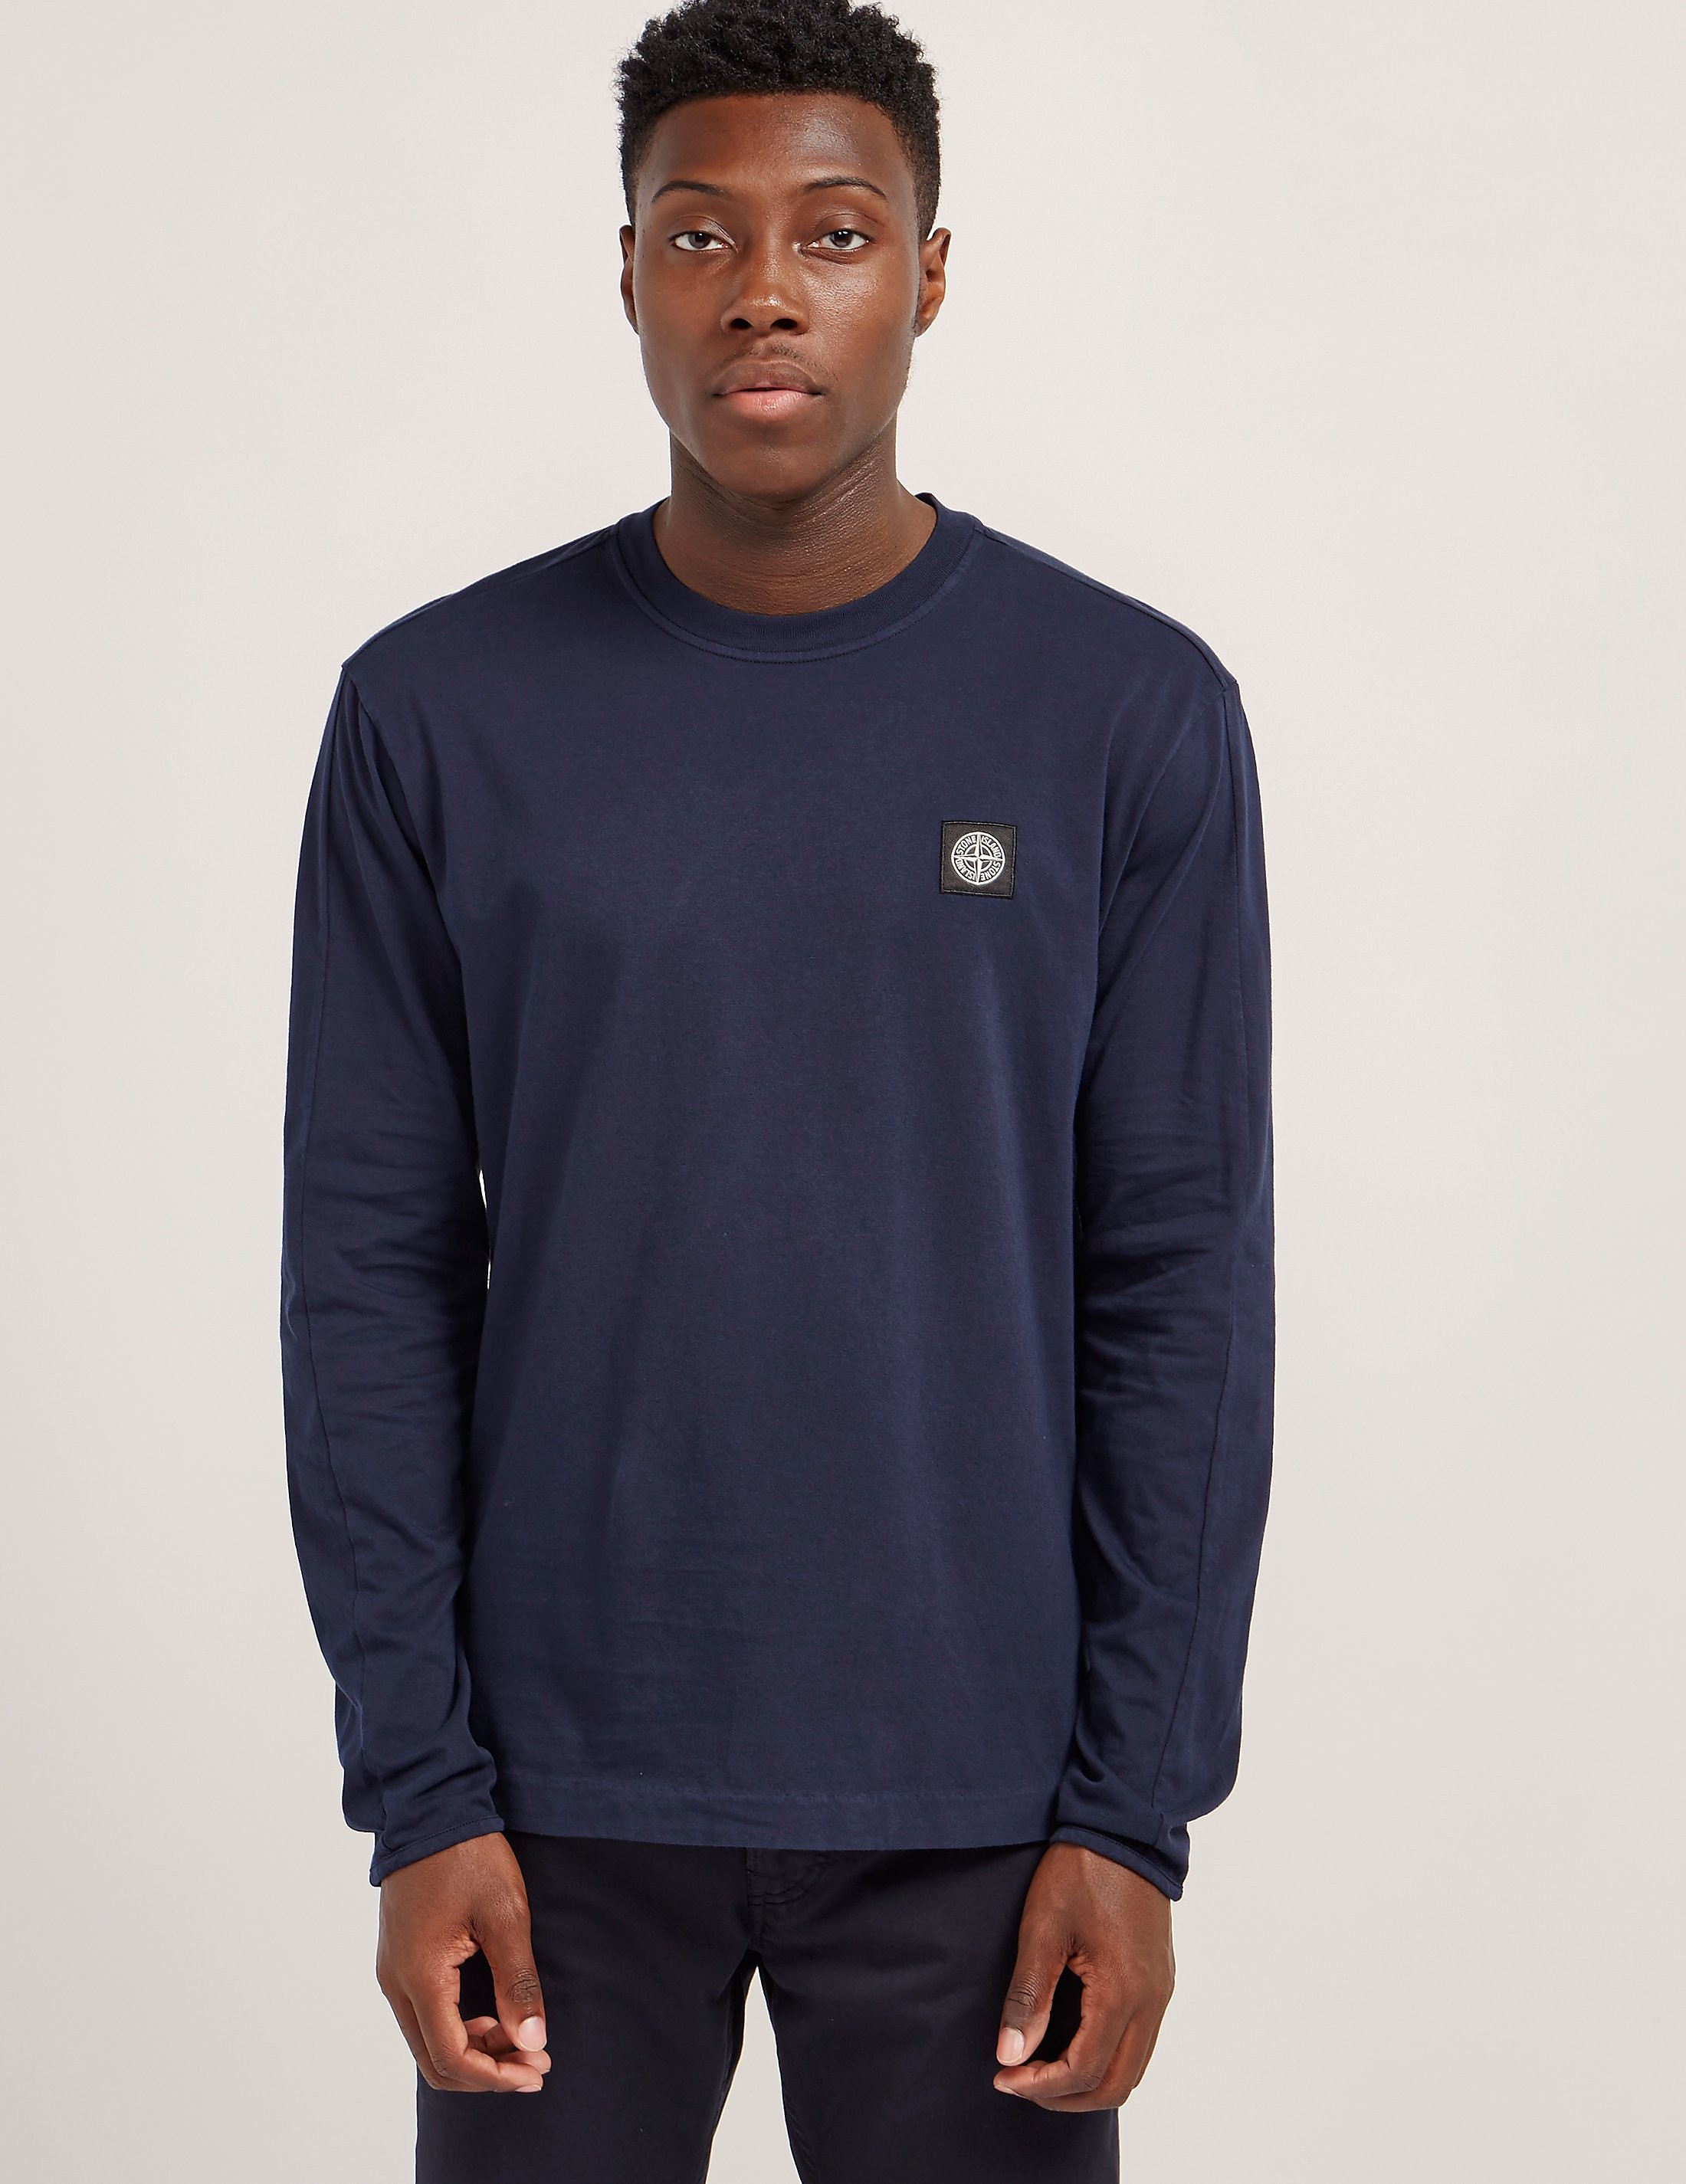 Stone Island Patch Long Sleeve T-Shirt